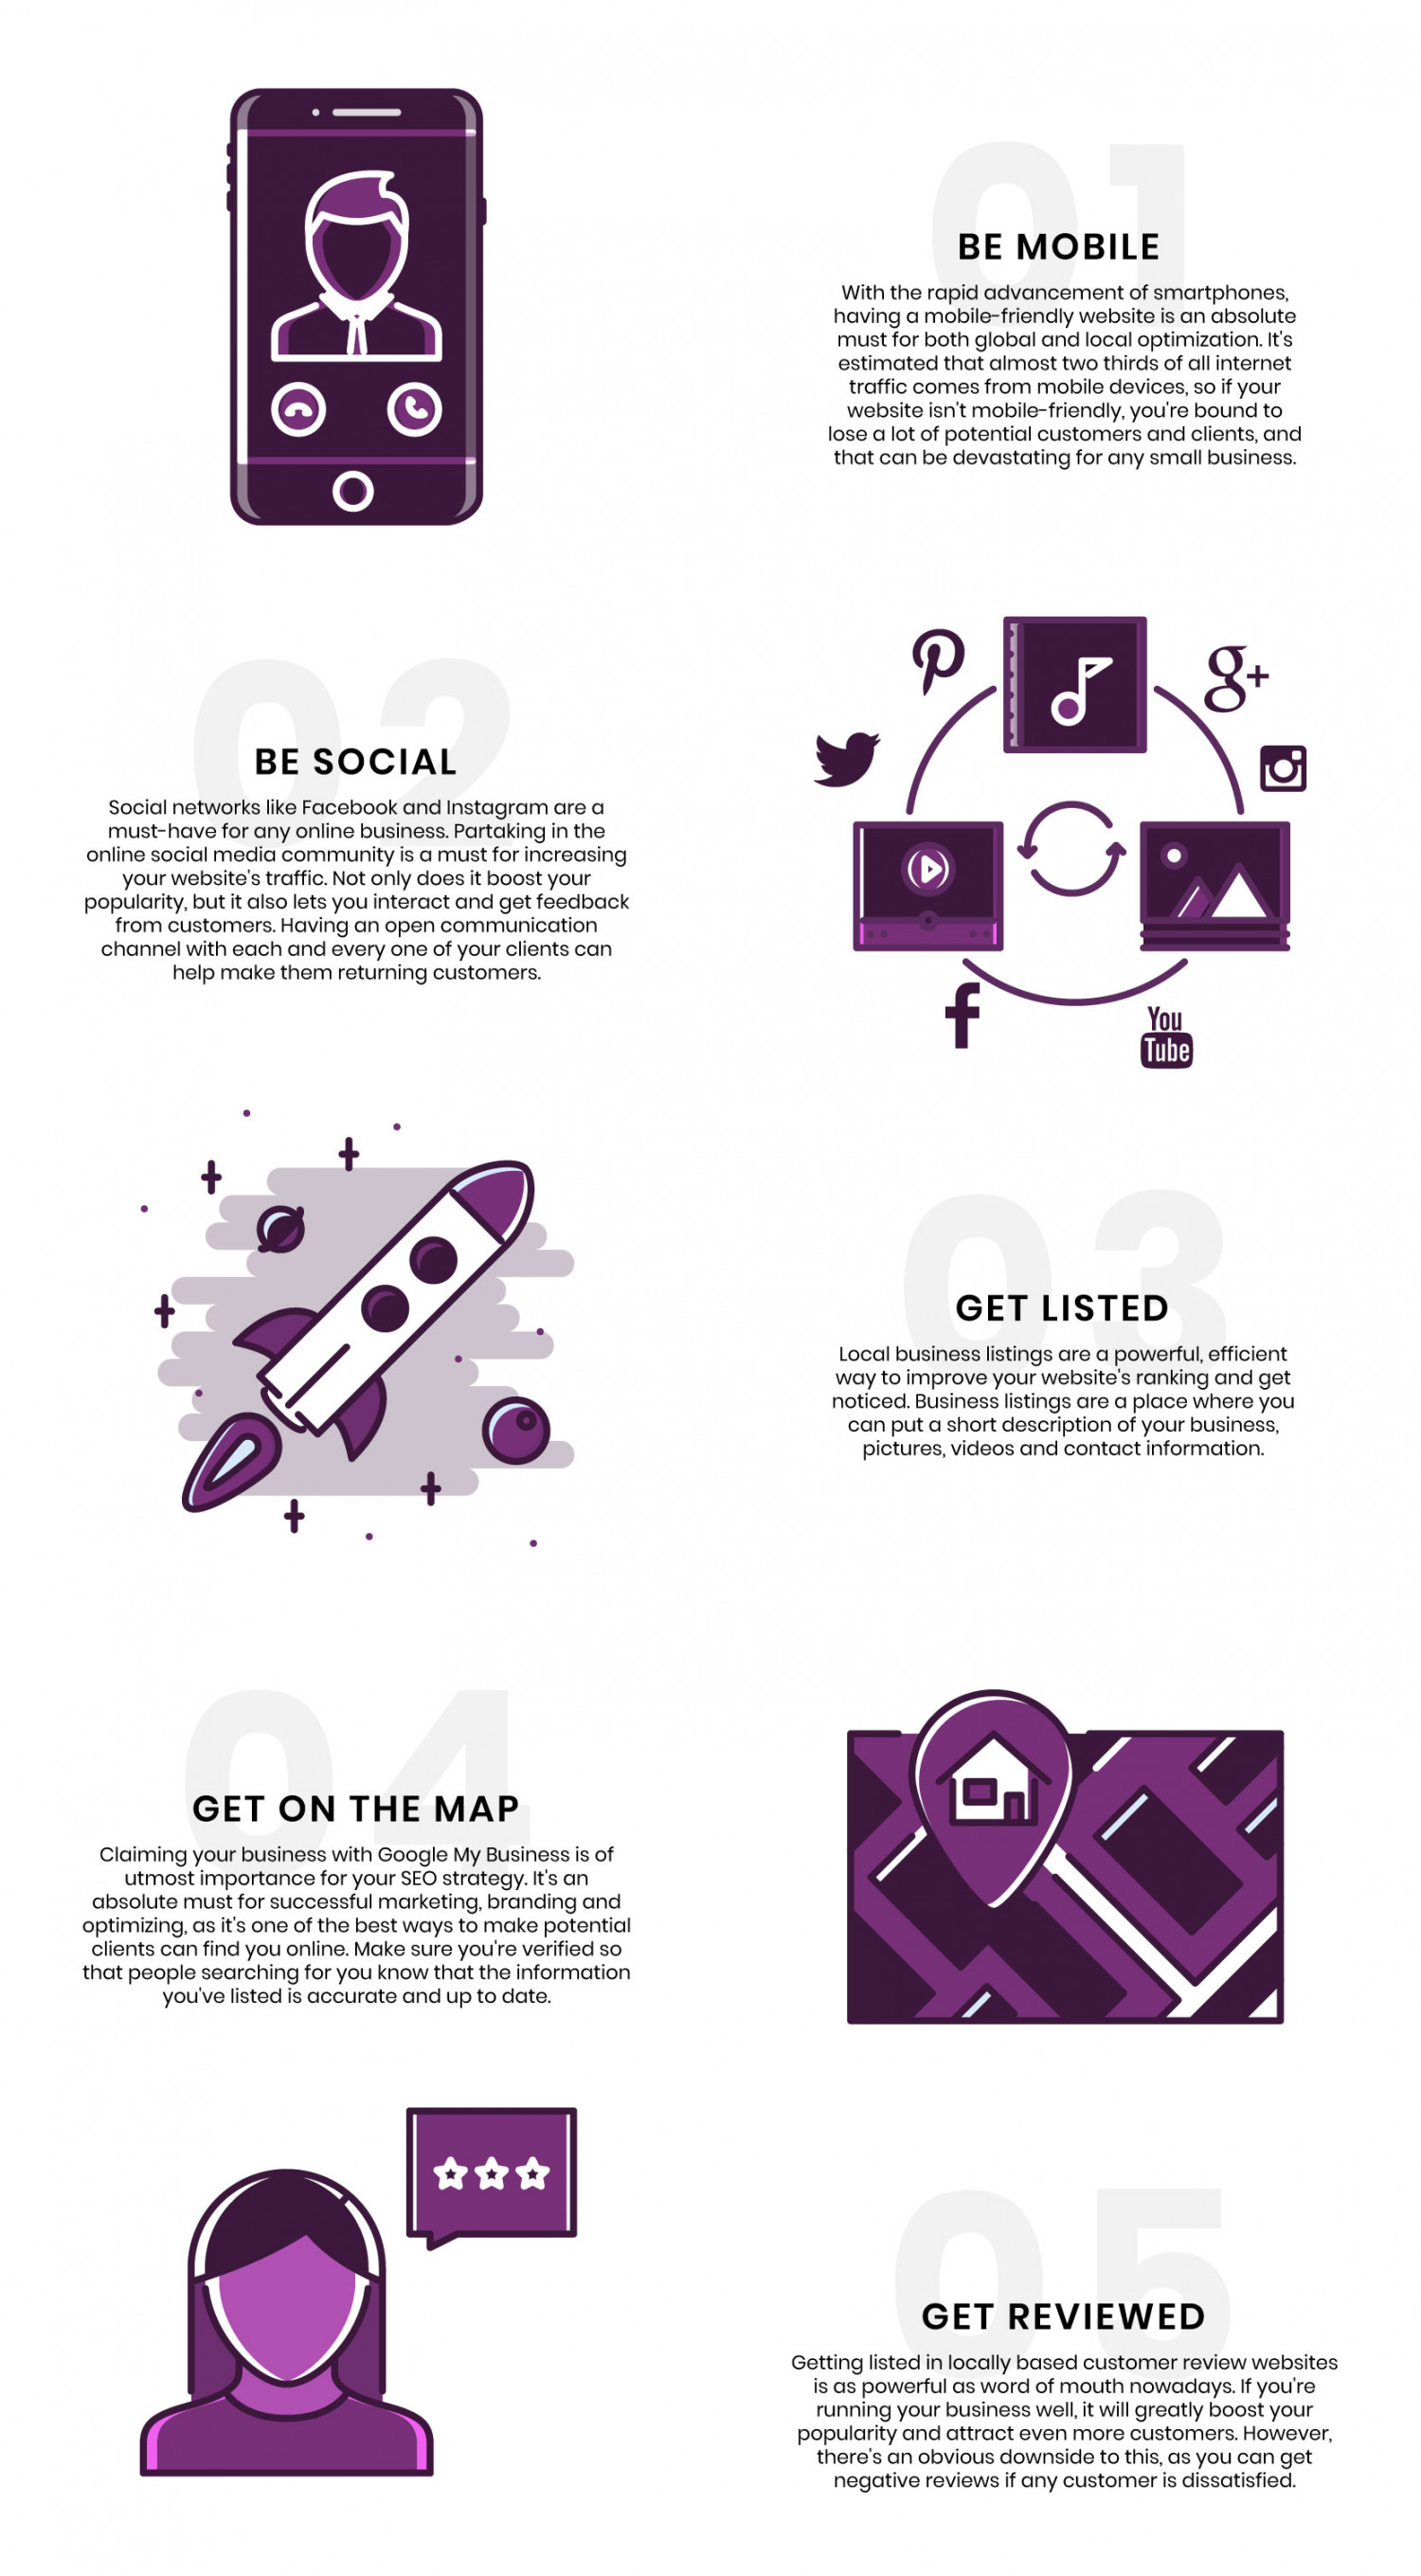 5 Key Tips For a Winning Local SEO Strategy Infographic